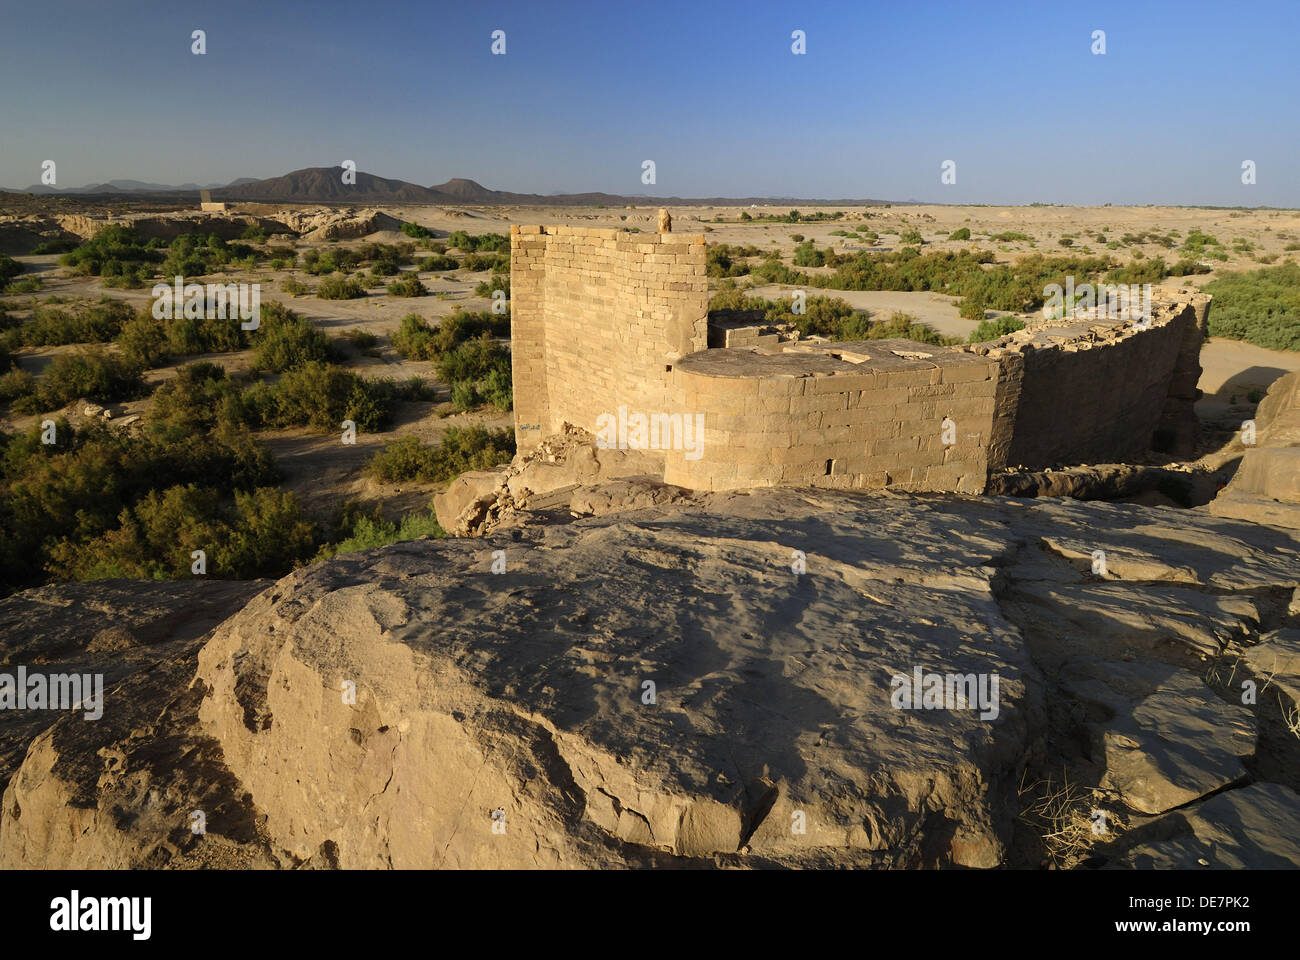 southern watergate of the antique dam of Marib on the Incense Route, Yemen, Arabia, West asia - Stock Image